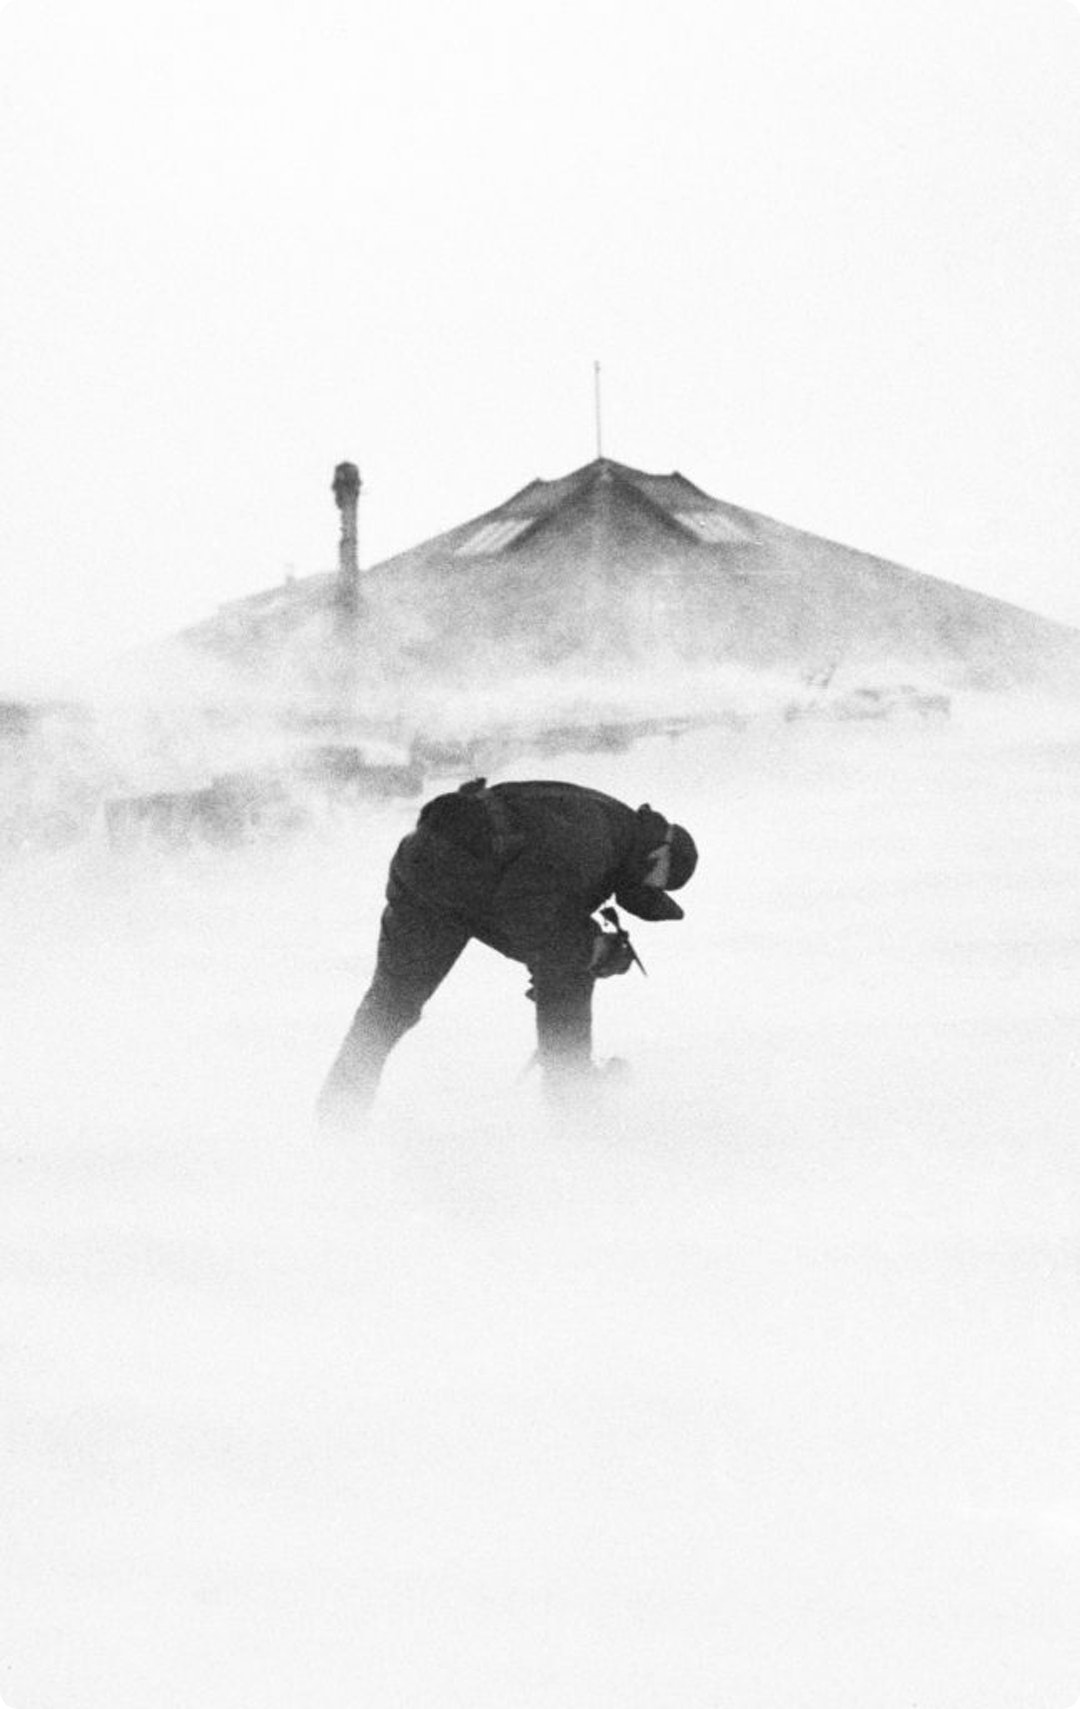 7 things that polar explorers used to stay sane for months of isolation that work in quarantine